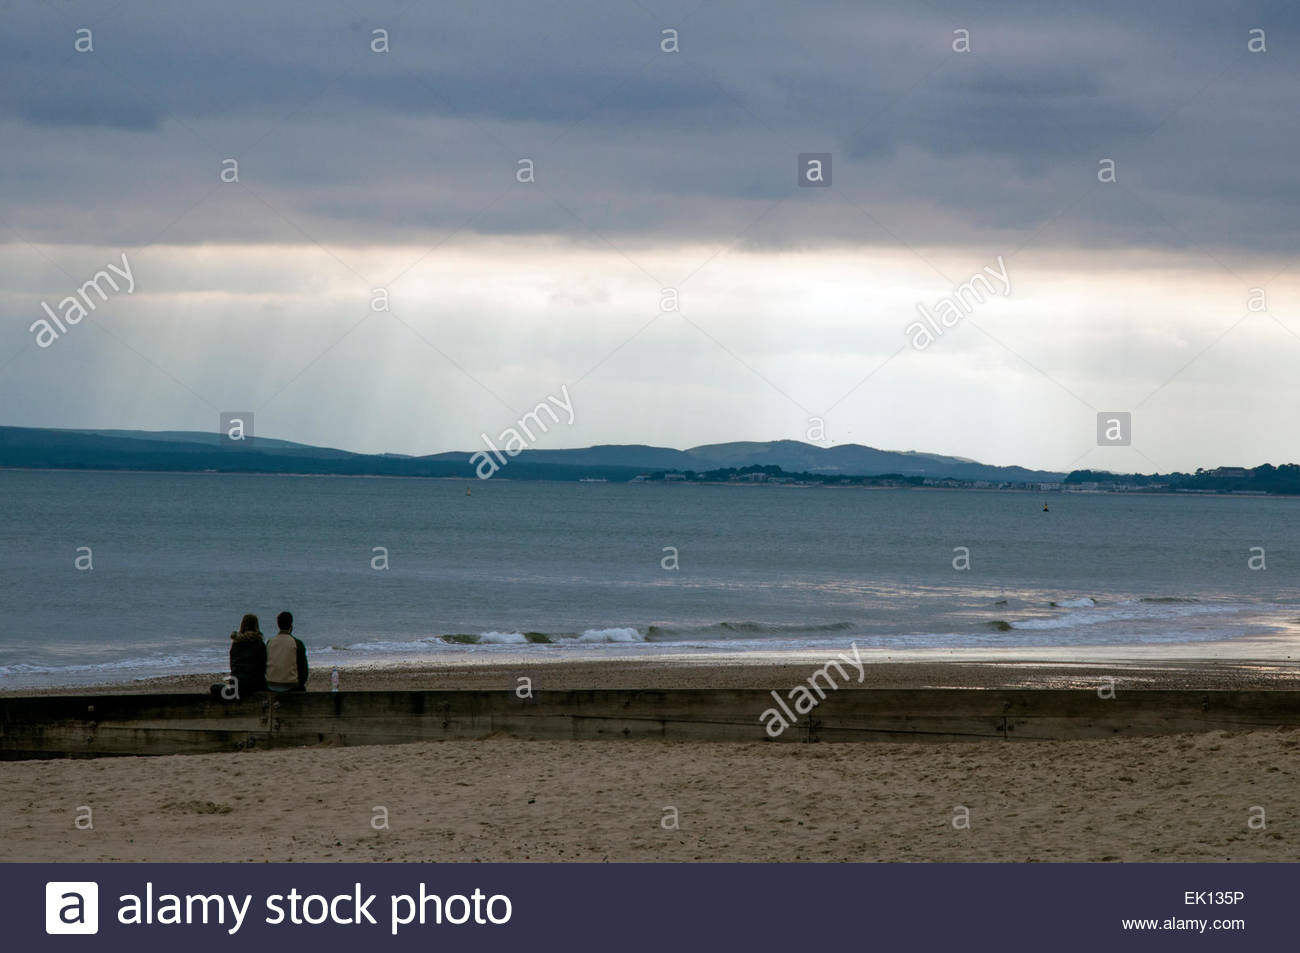 Bournemouth, Dorset, England. 4th April 2015. UK weather. A young couple sits on a groyne and watches rays of sunshine - Stock Image